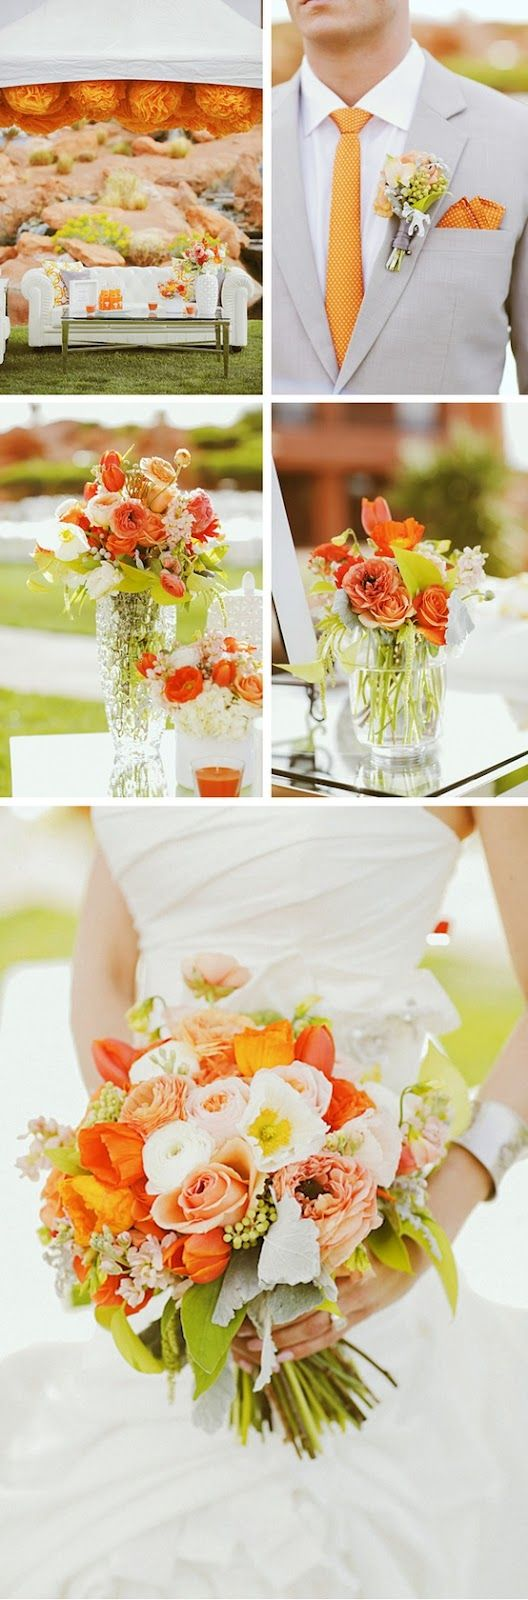 orange and white wedding palette inspiration I like the idea of the centerpiece. 2nd picture setting one on right.